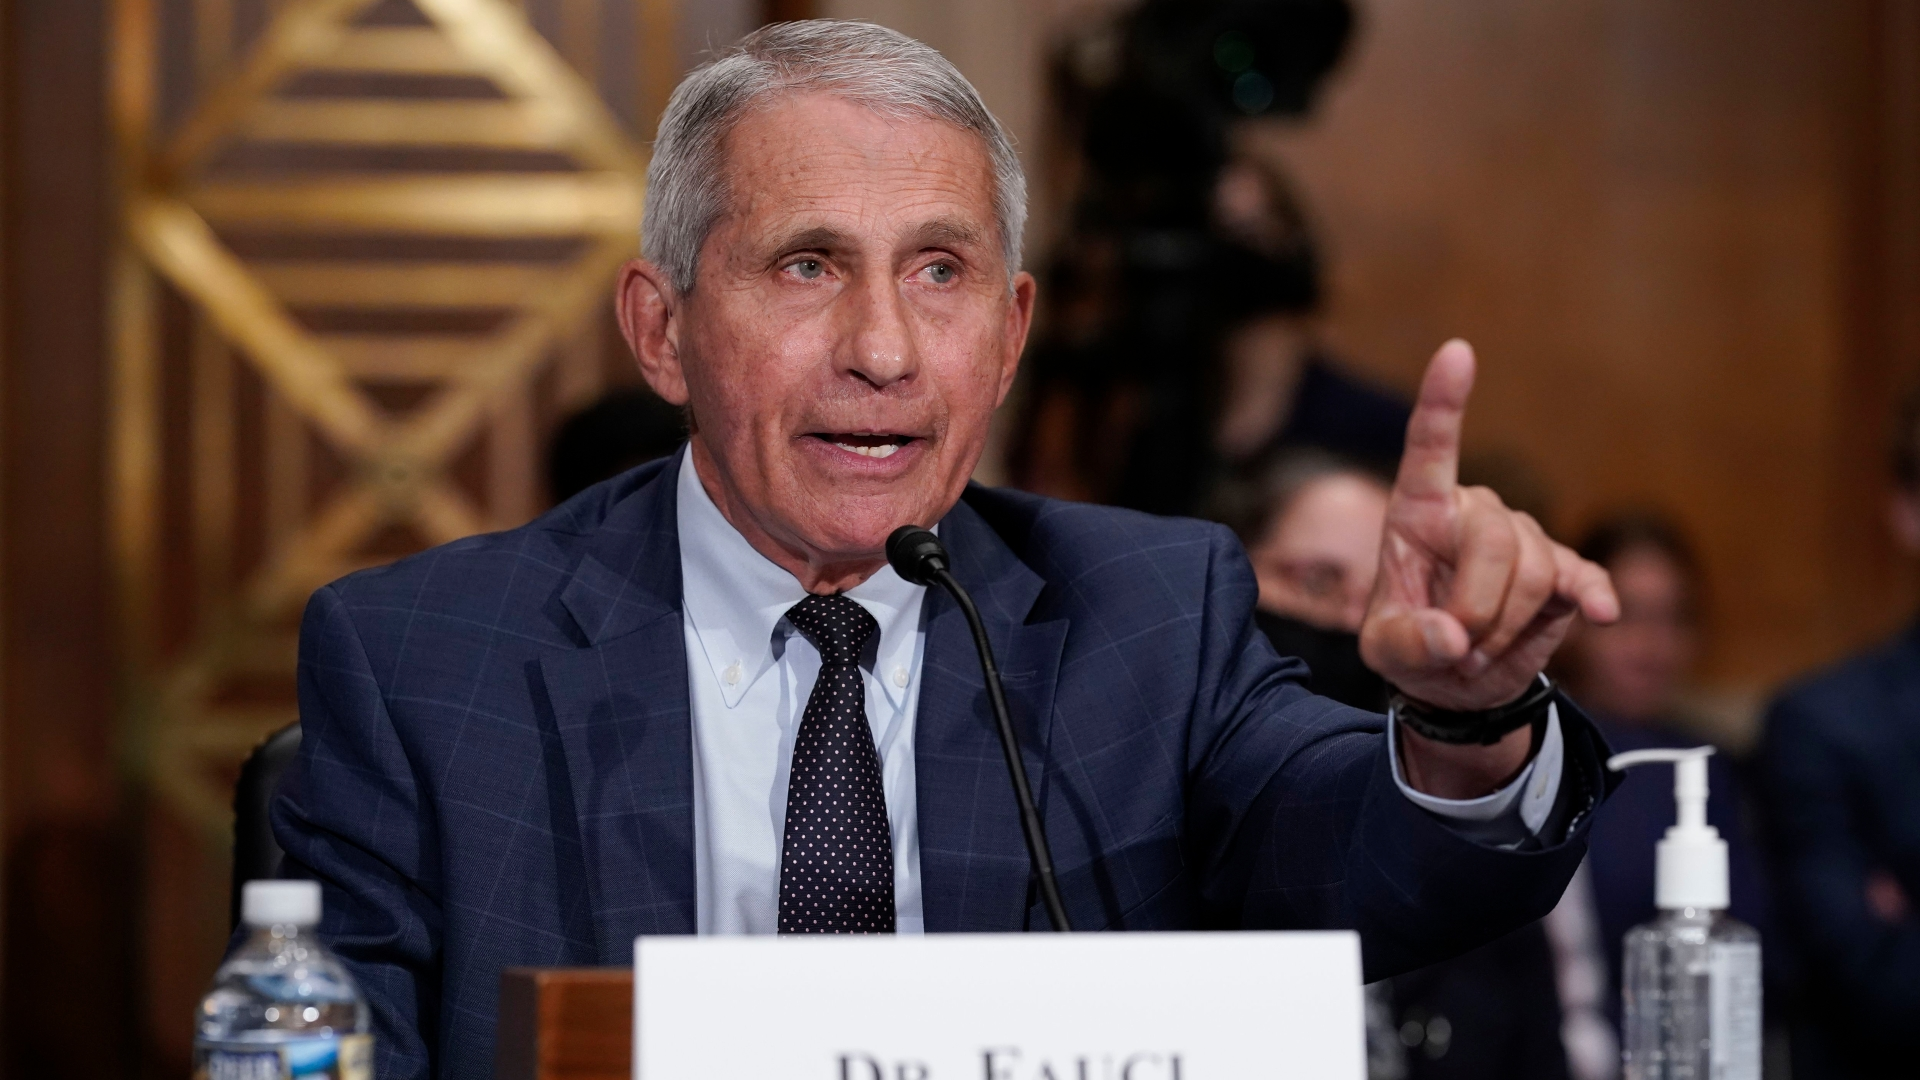 Here's when Dr. Fauci says the US will get back to normal